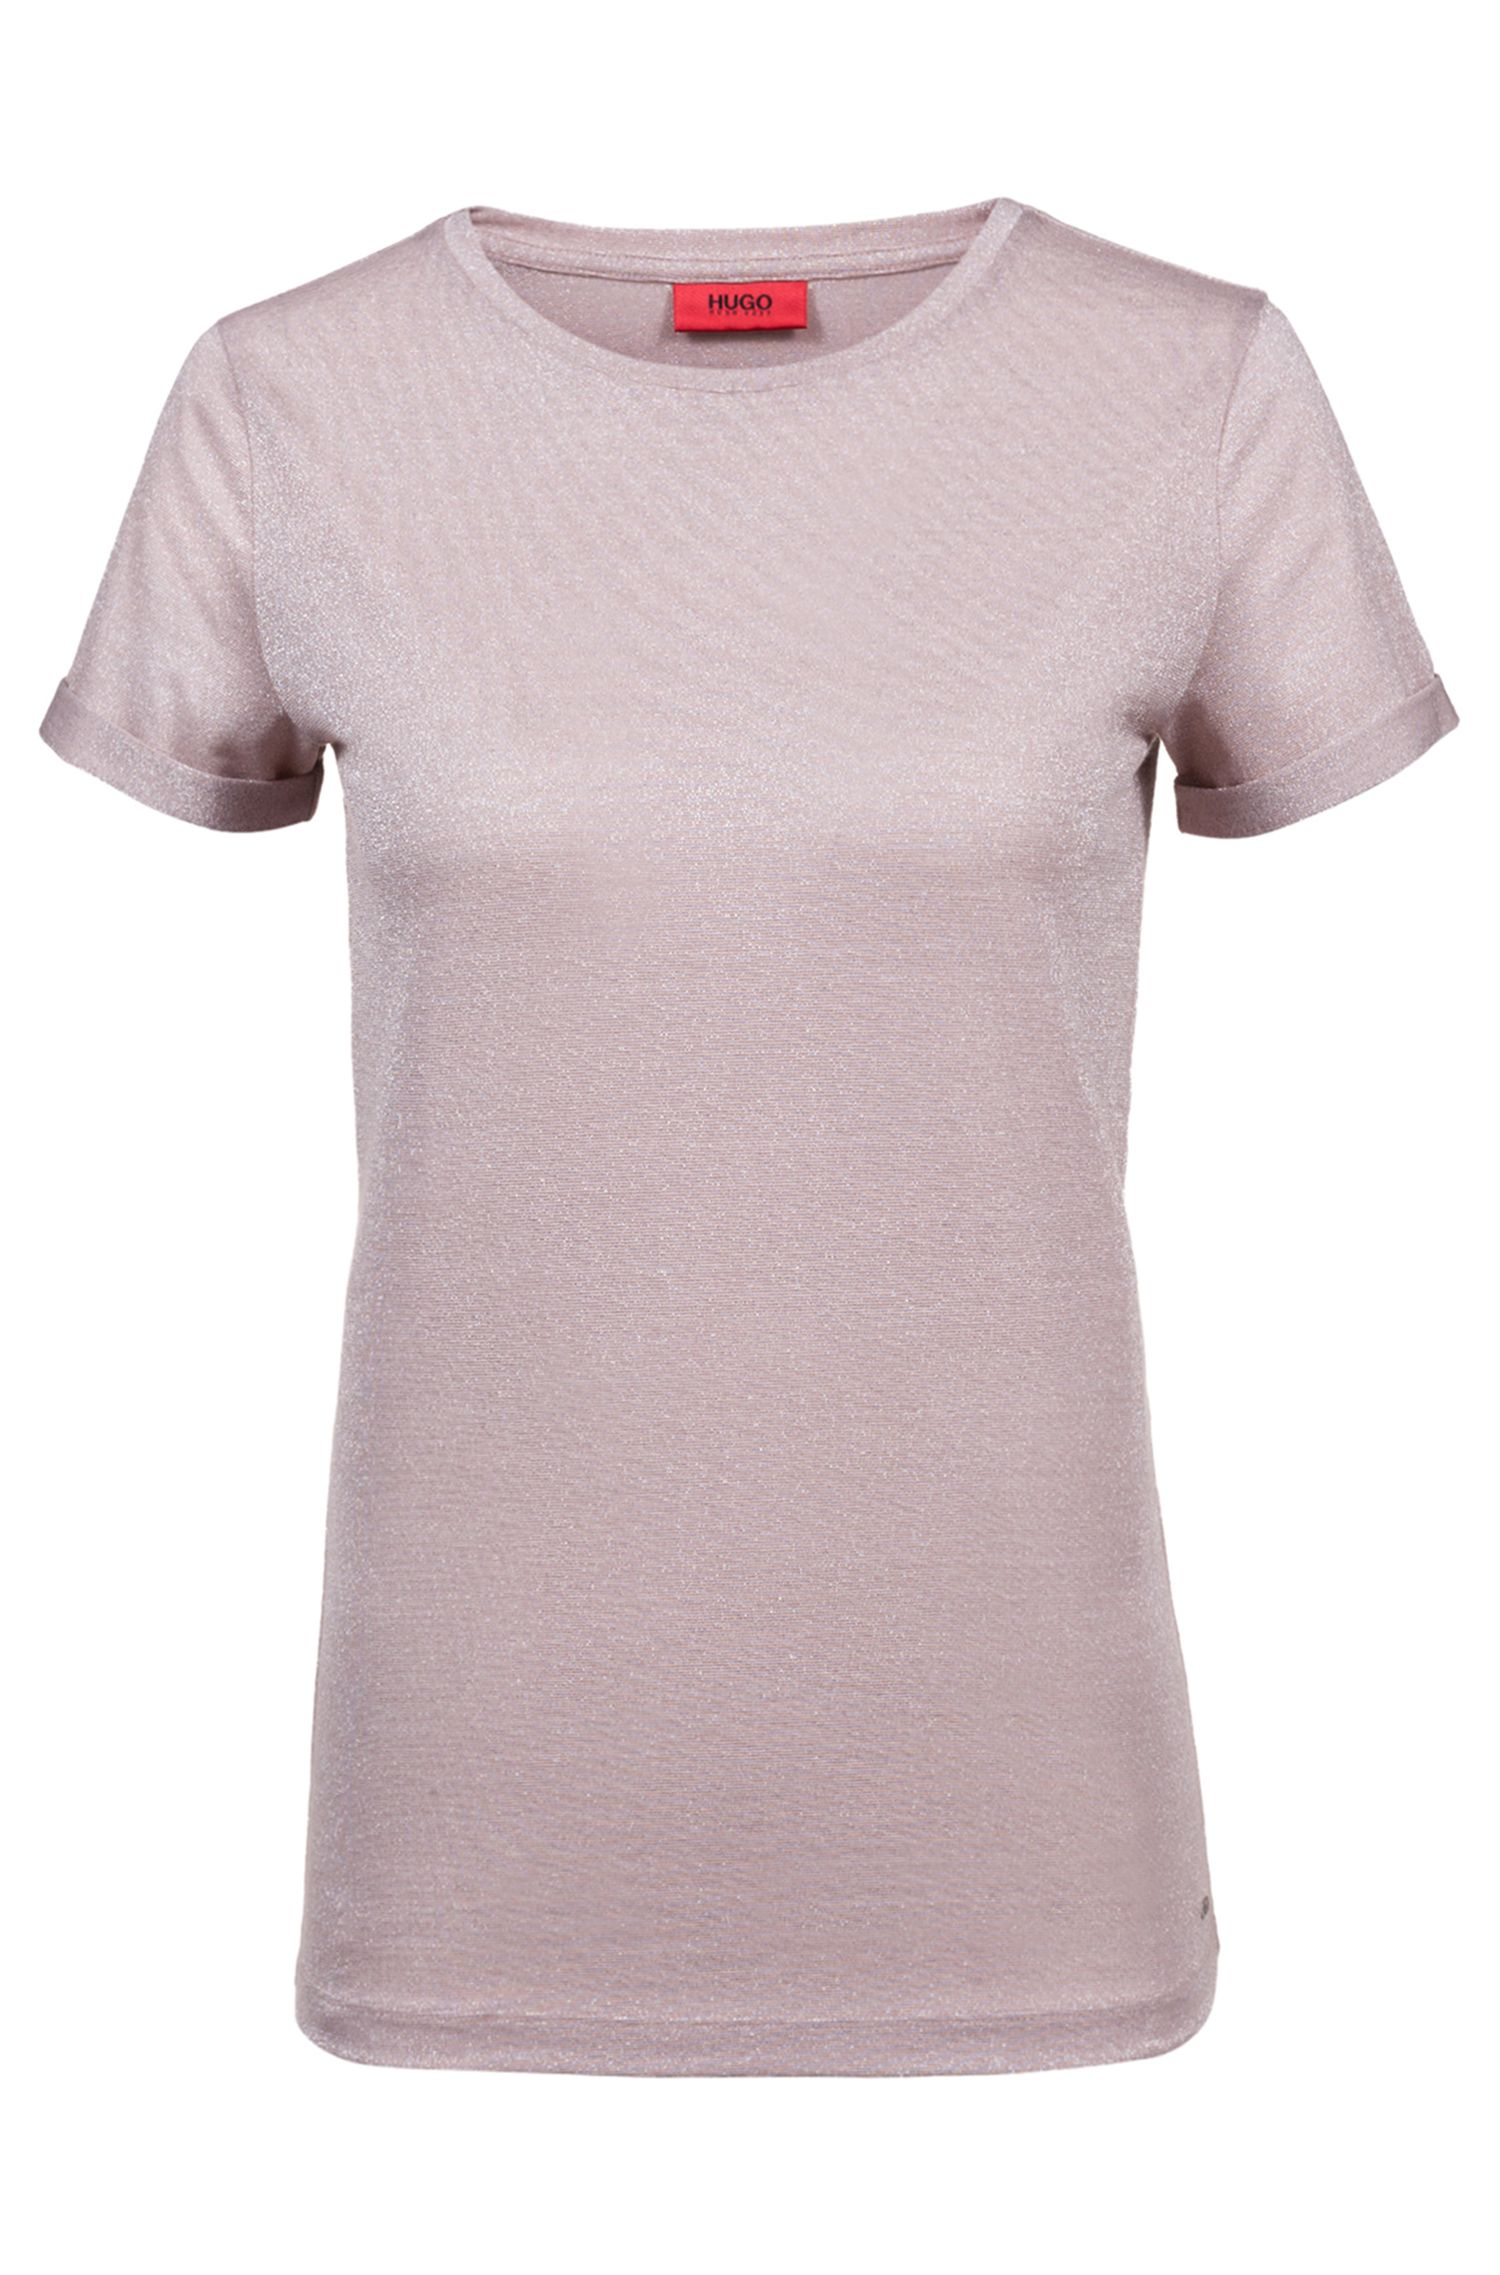 Slim-fit T-shirt in sparkly stretch-jersey fabric, Open Pink